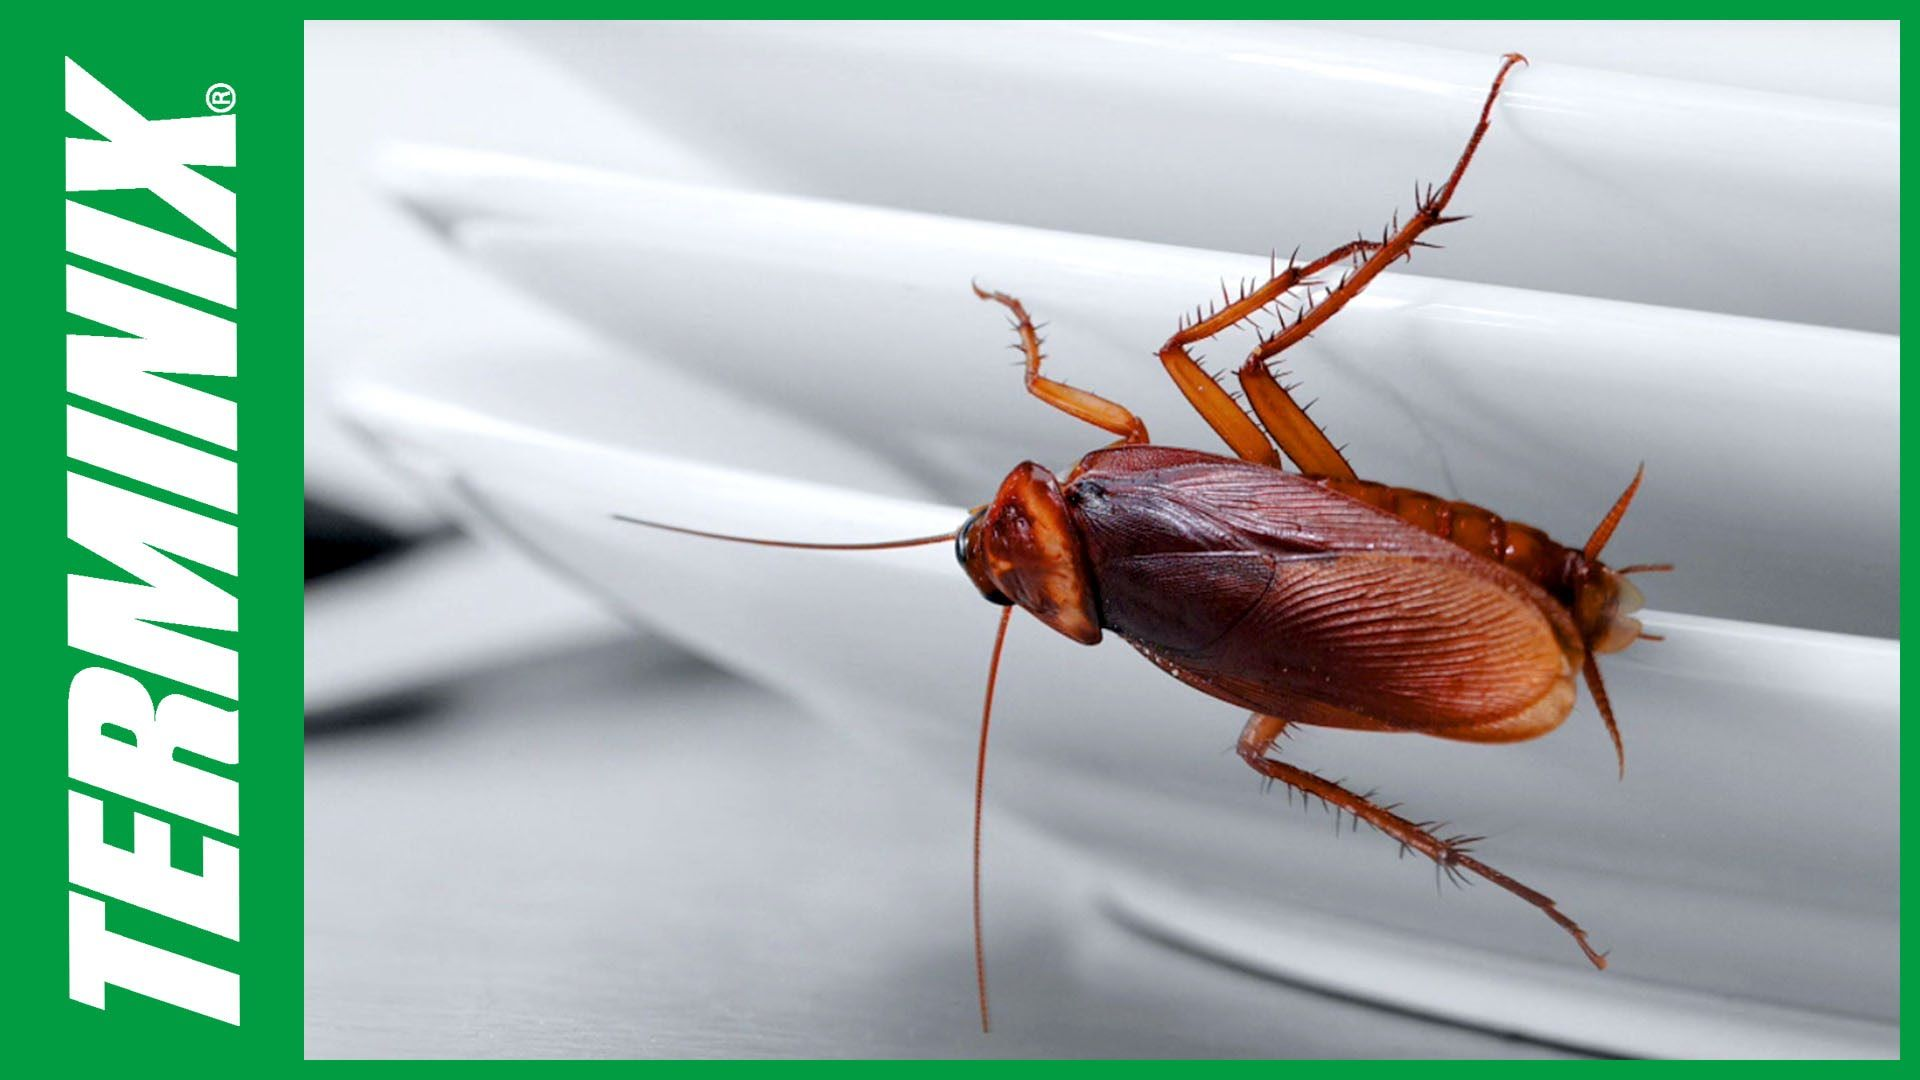 Are you having roach problems at your place of business